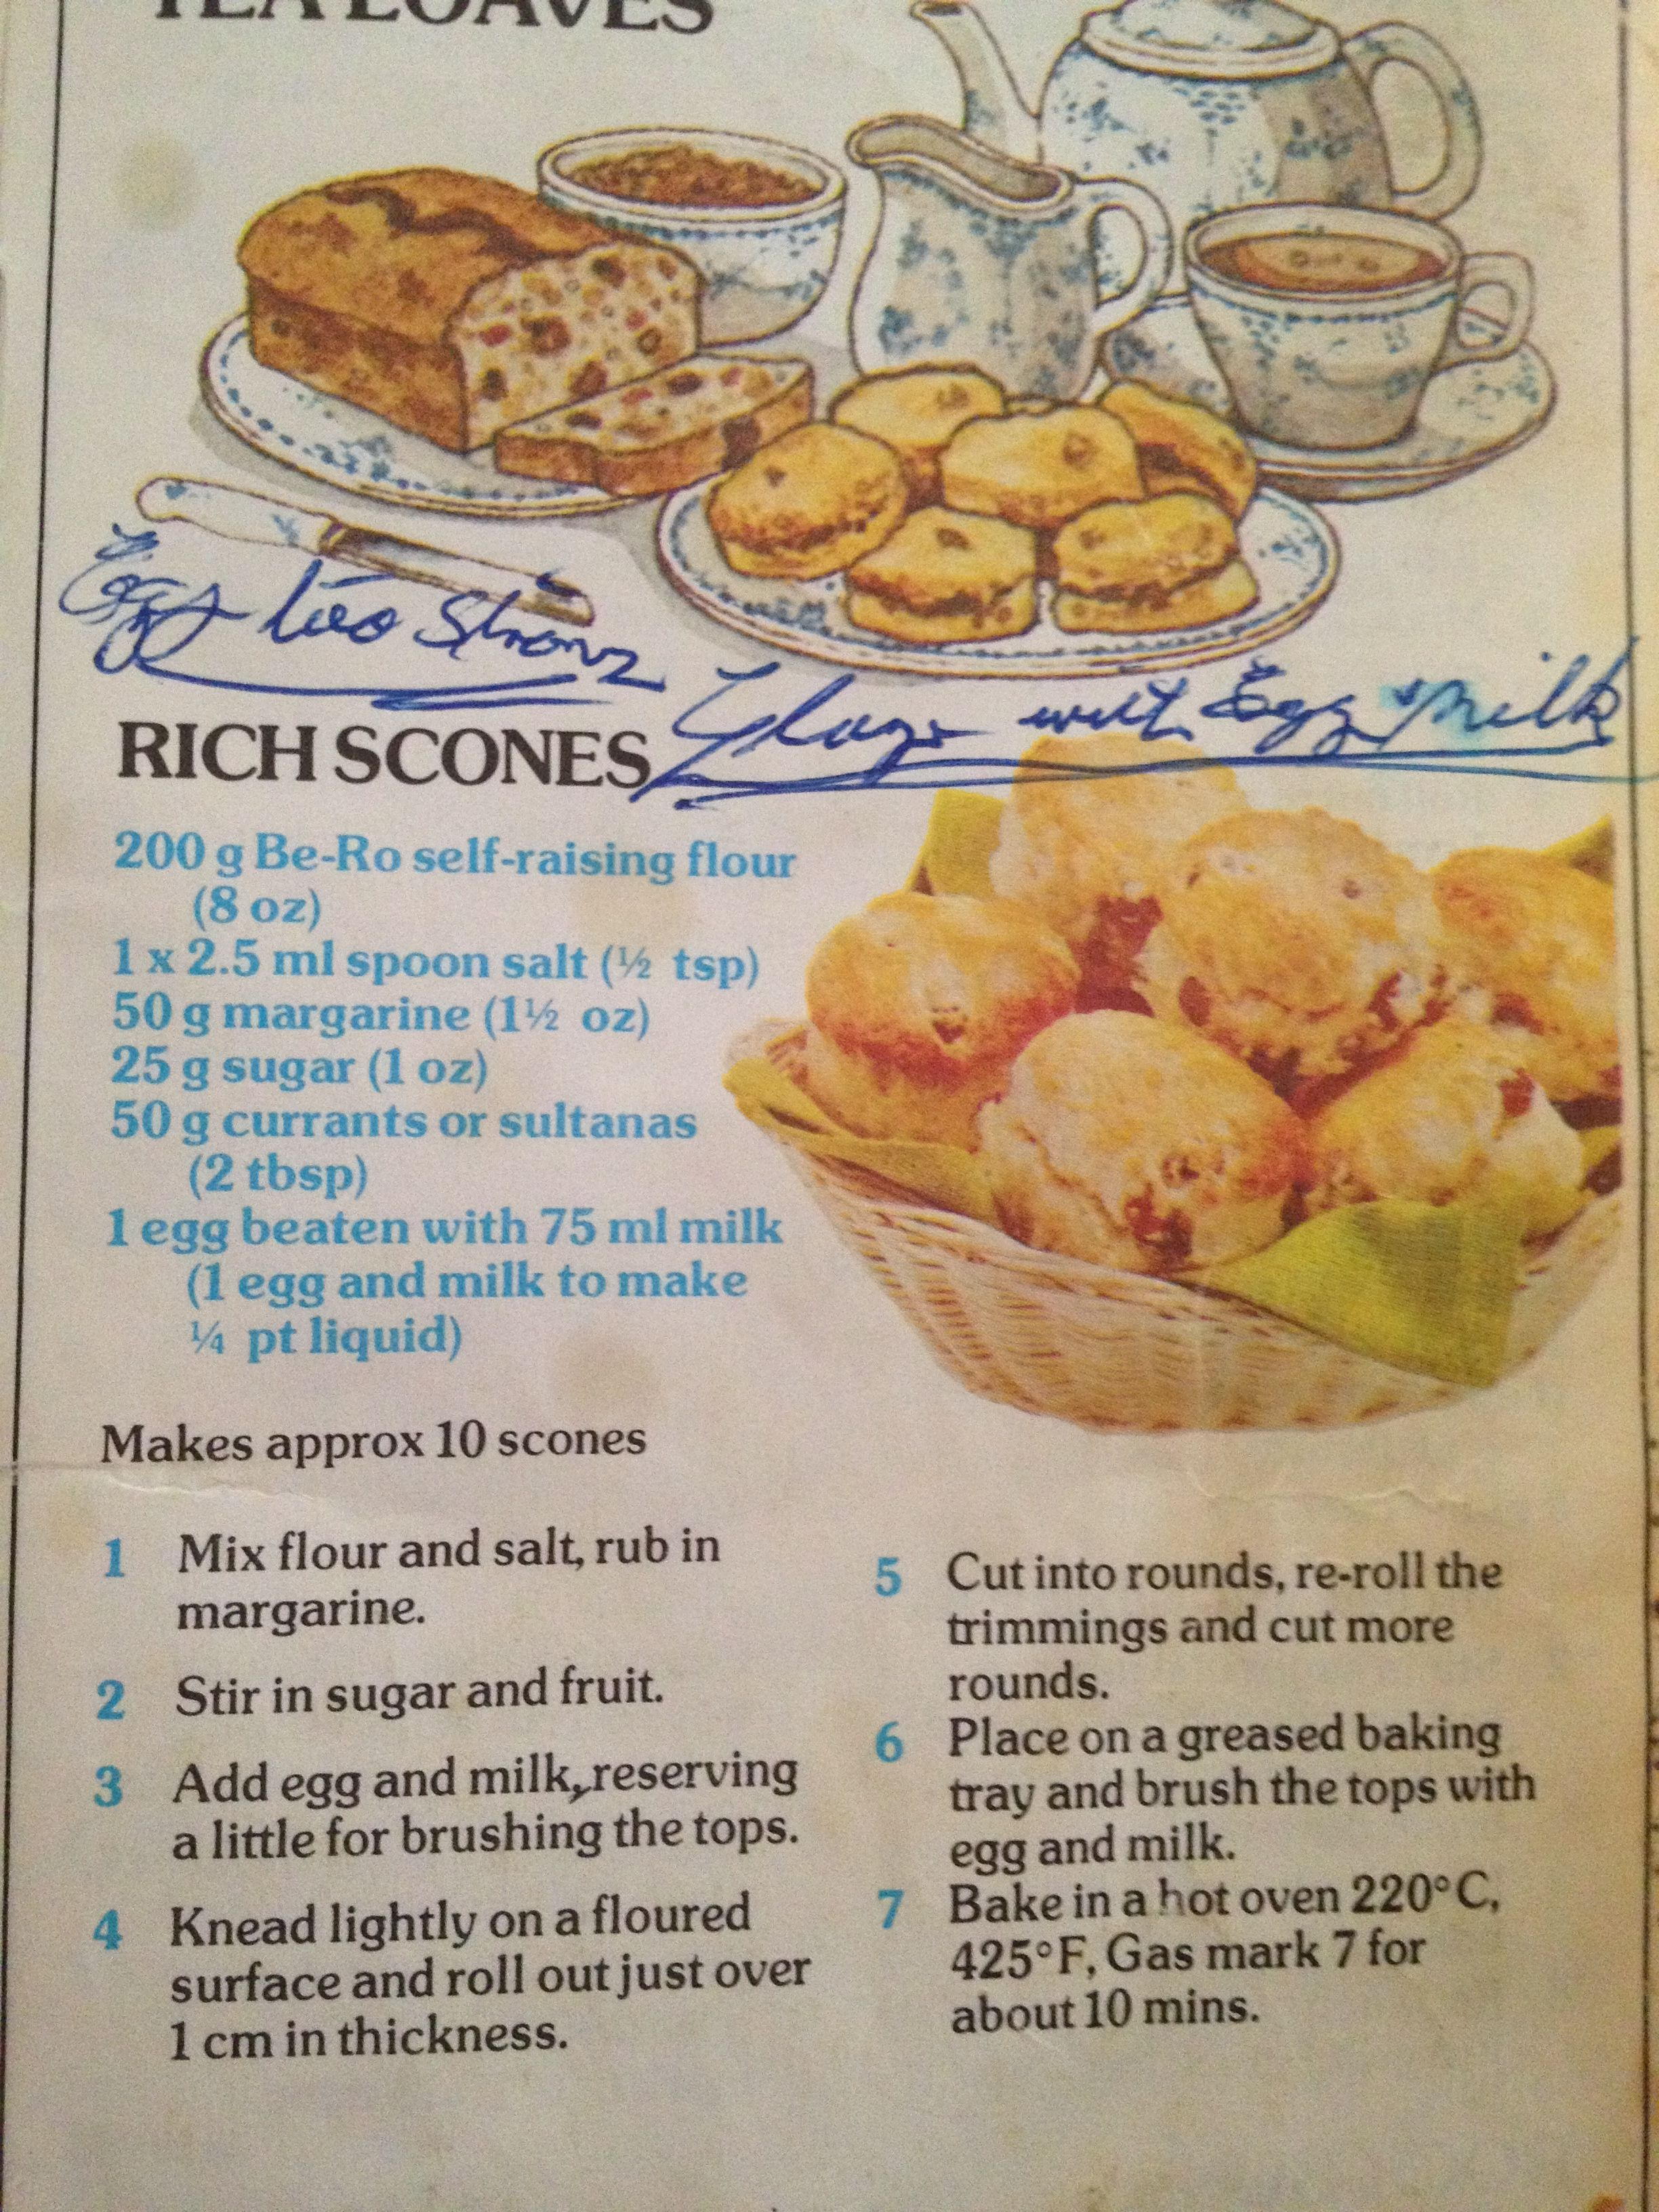 Pin by Stephanie Britton on Recipes sweet | Vintage recipes, Afternoon tea recipes, Cookbook recipes